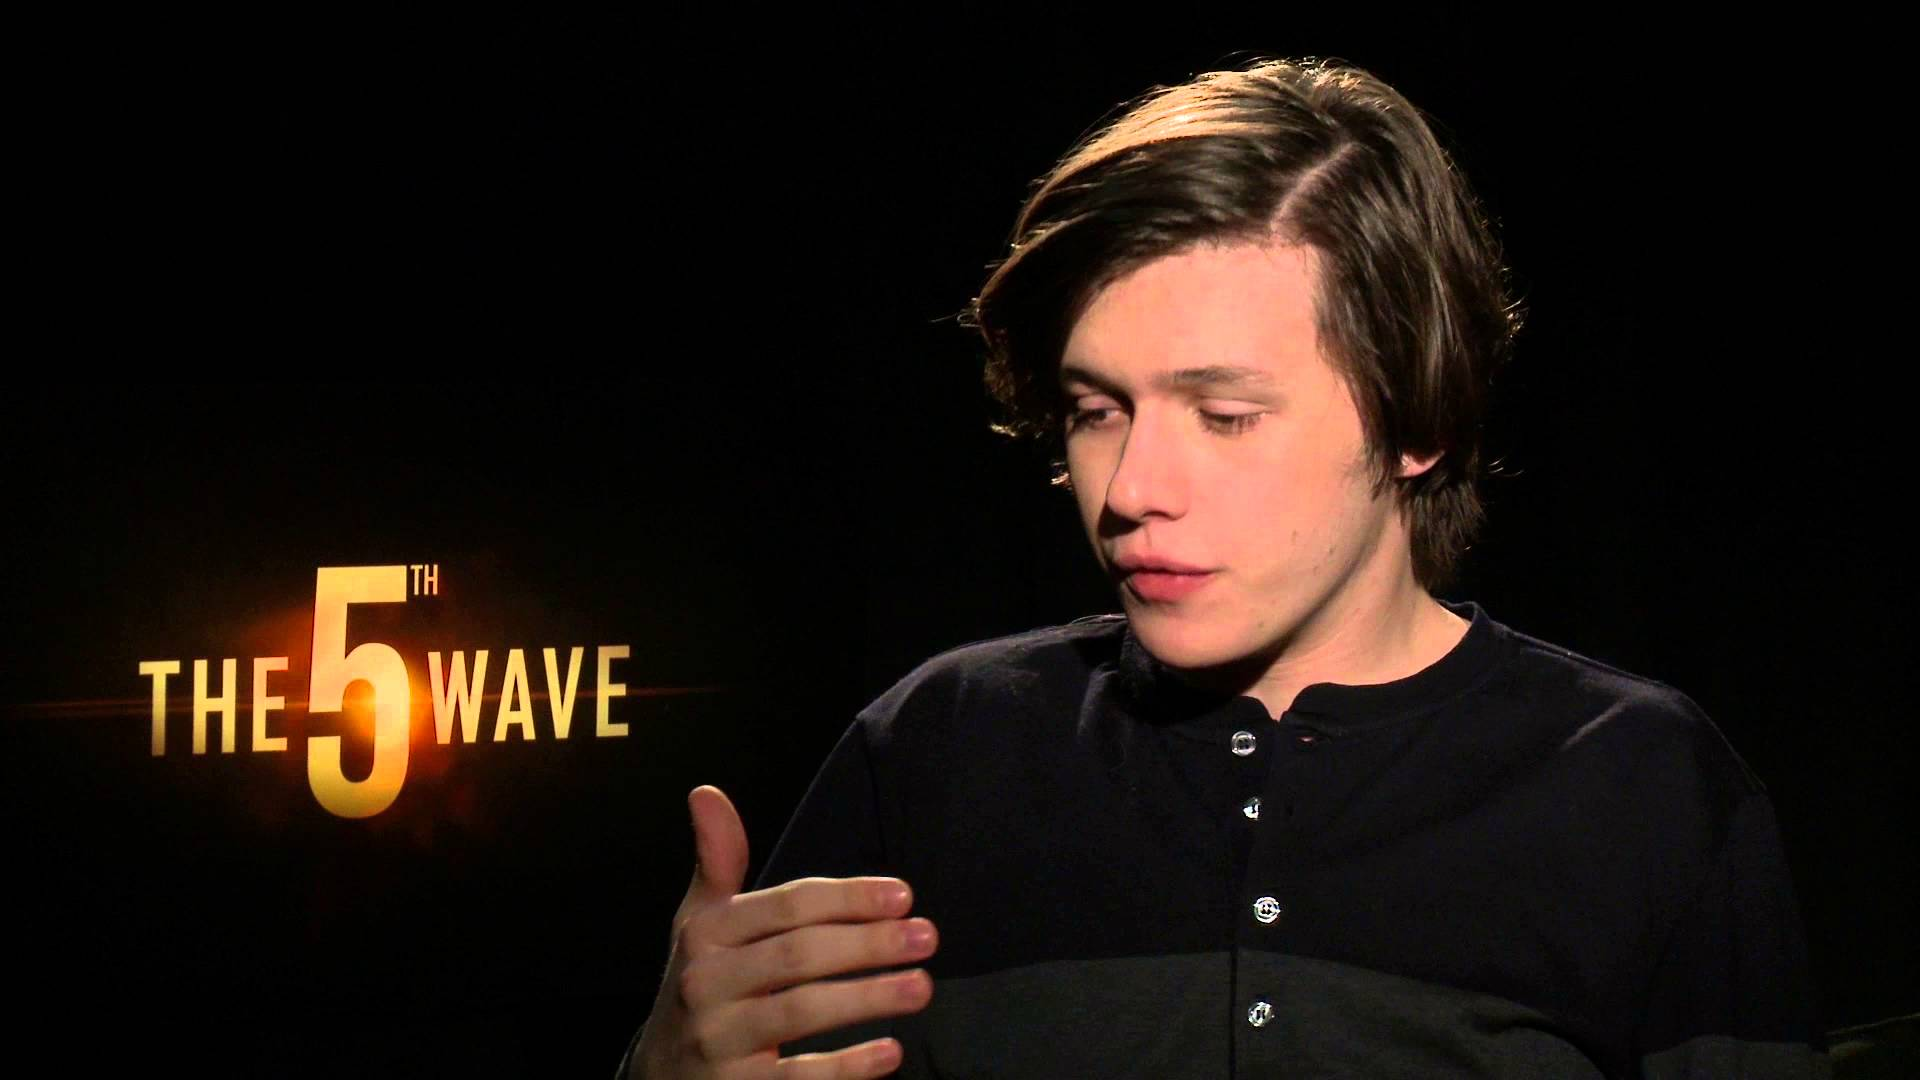 the wave characterization of ben